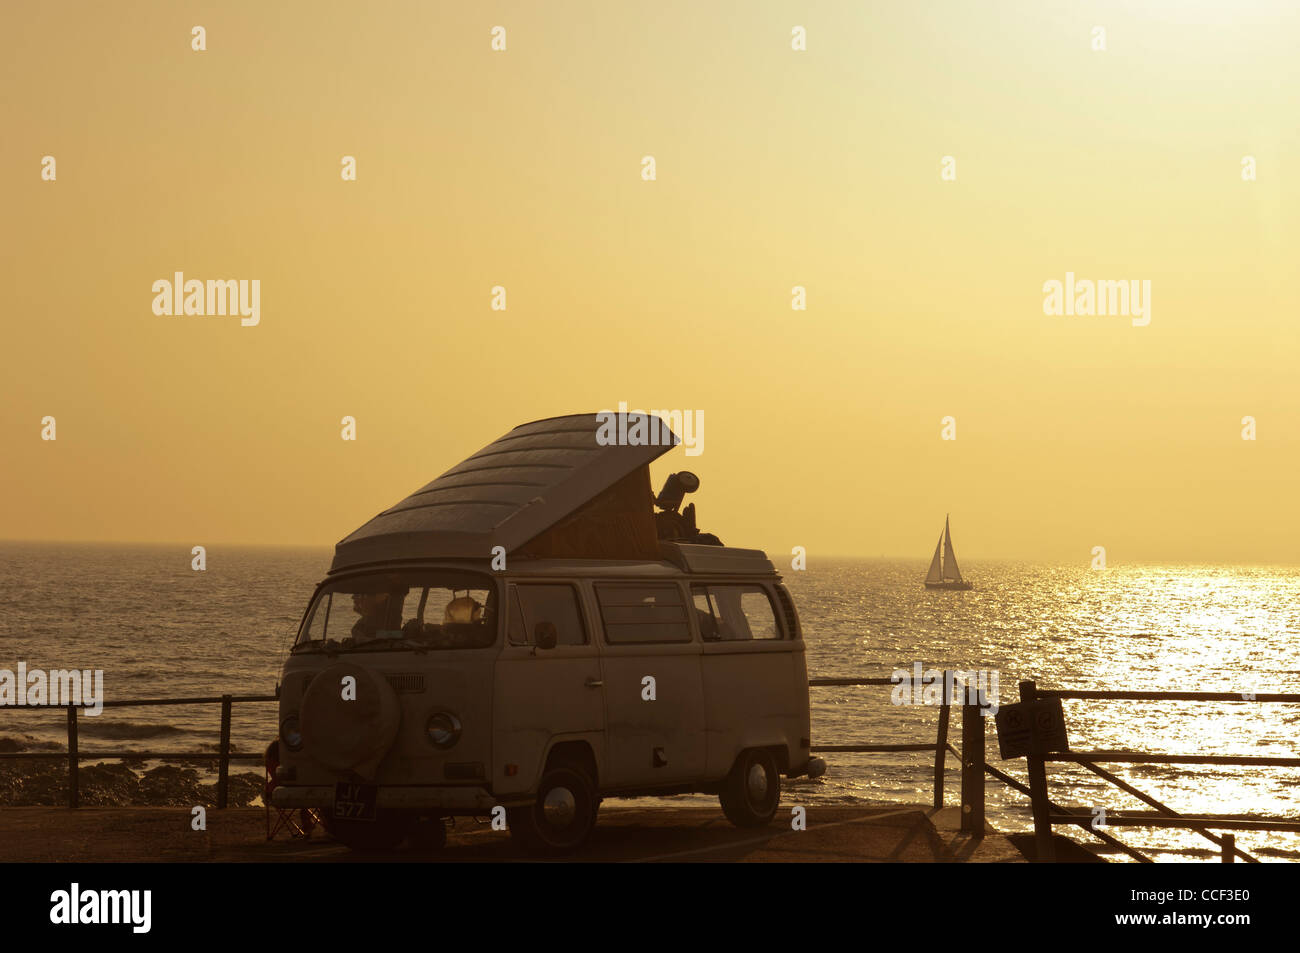 A VW camper van parked on the seafront at dawn. Broadstairs. Isle of Thanet. Kent. England. UK - Stock Image